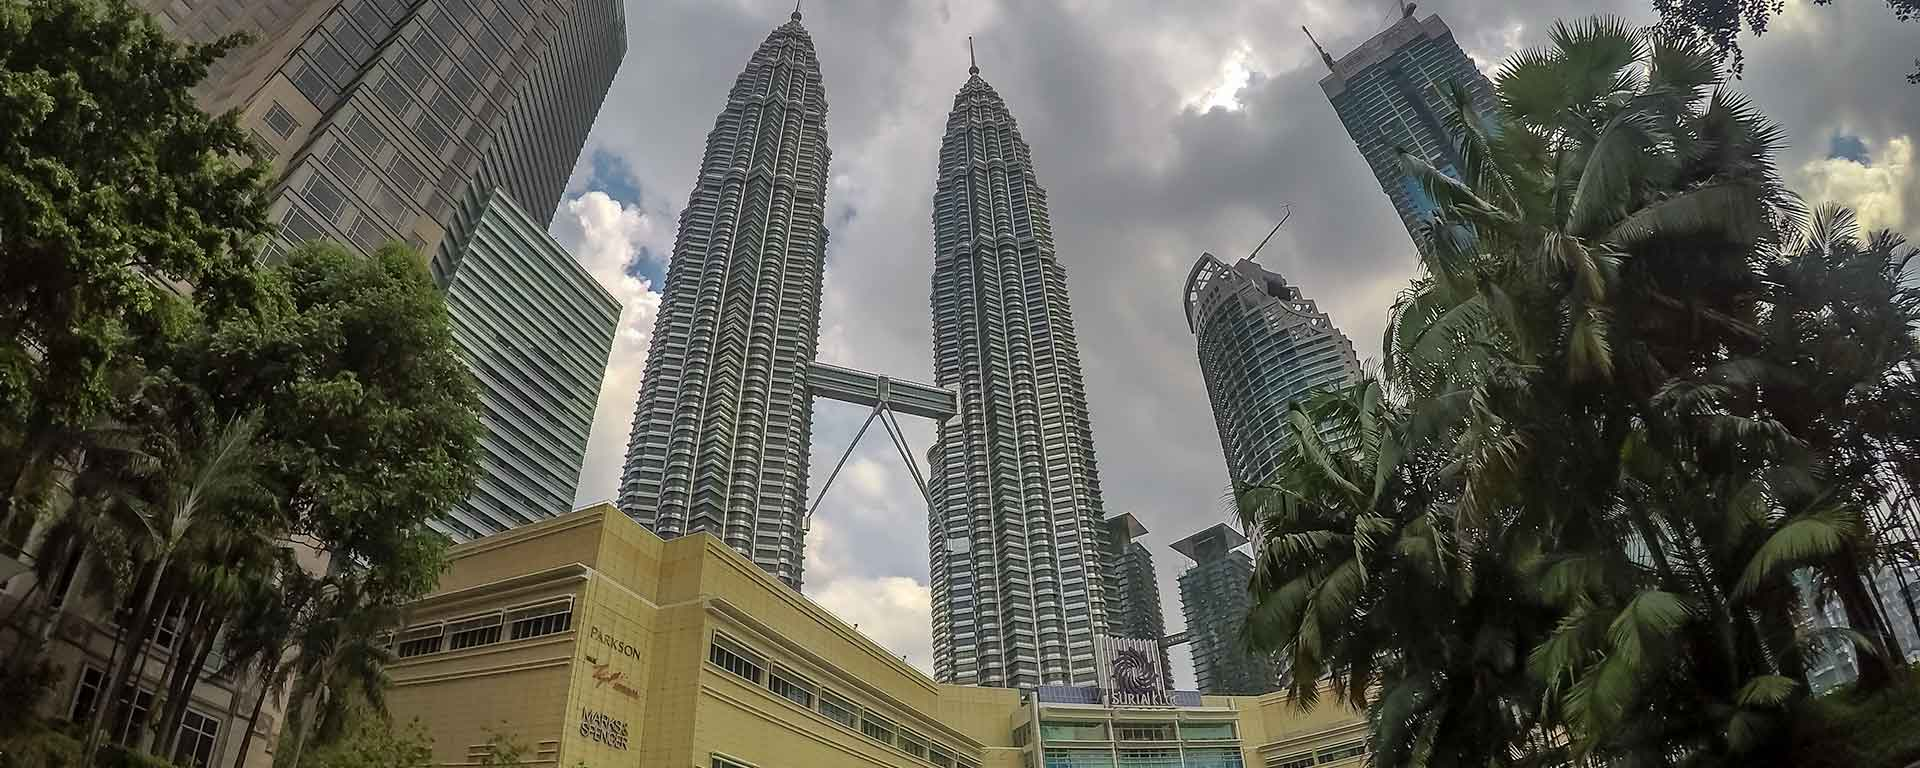 As torres gêmeas, o shopping e o parque KLCC